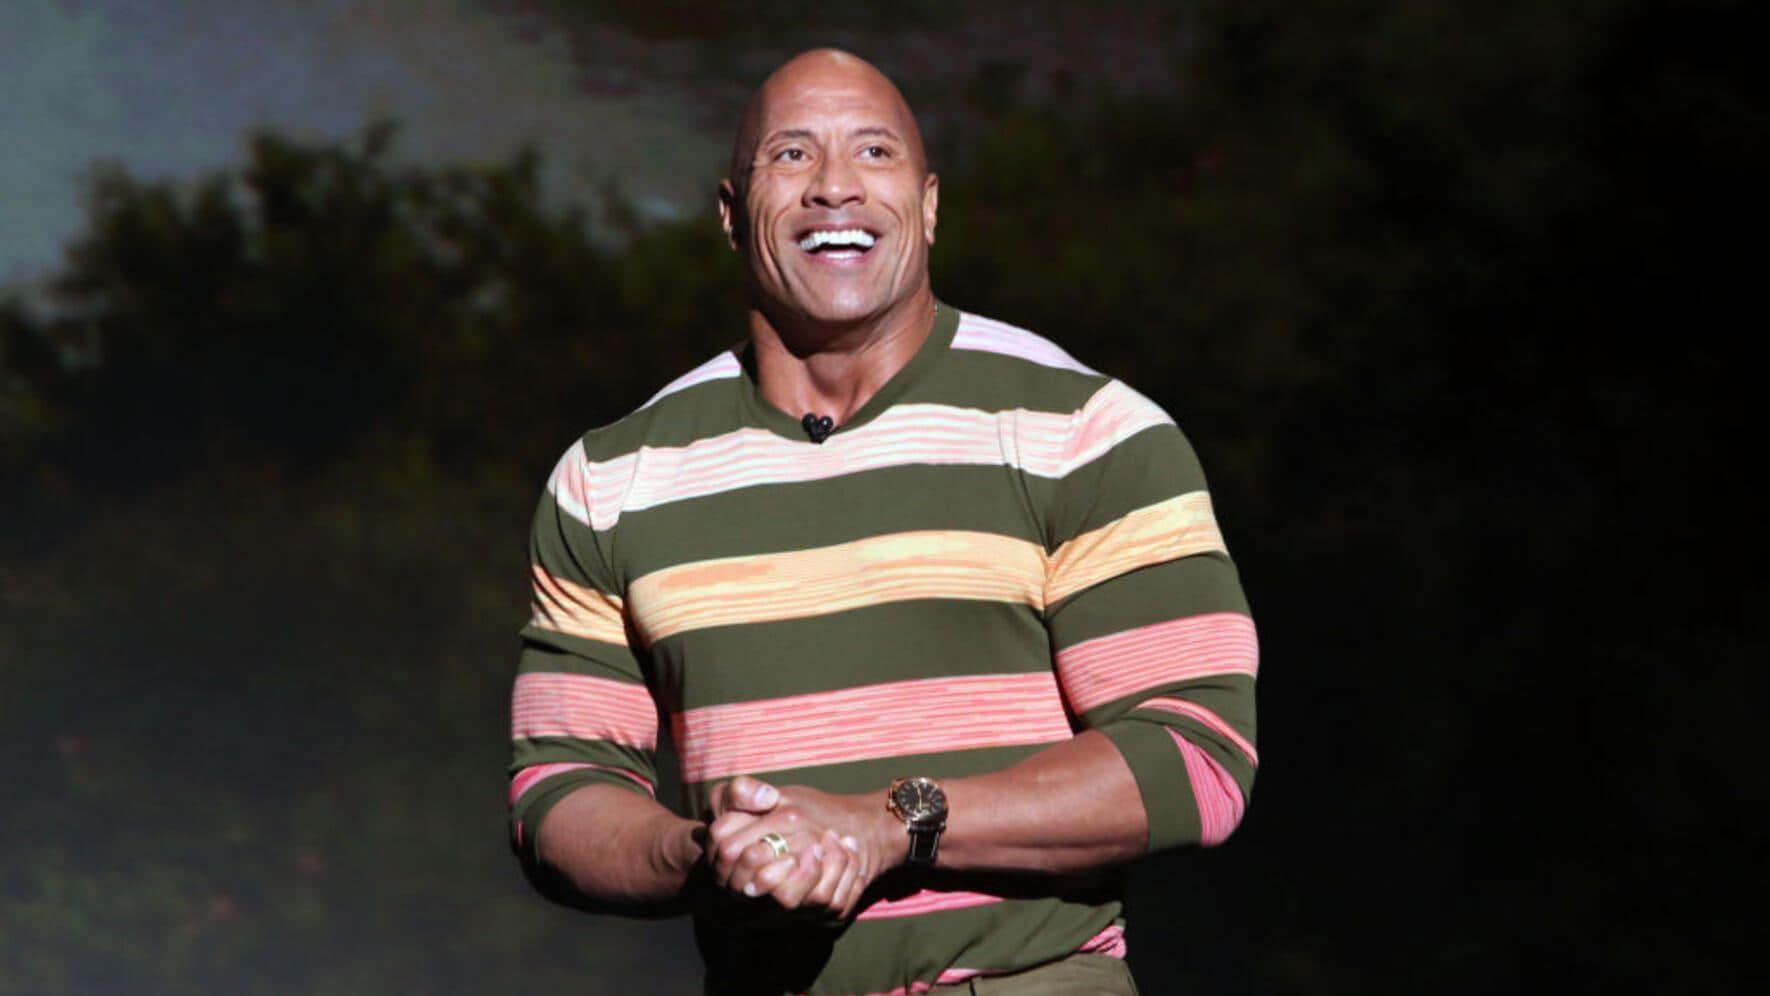 ANAHEIM, CALIFORNIA - AUGUST 24: Dwayne Johnson of 'Jungle Cruise' took part today in the Walt Disney Studios presentation at Disney's D23 EXPO 2019 in Anaheim, Calif.  'Jungle Cruise' will be released in U.S. theaters on July 24, 2020. (Photo by Jesse Grant/Getty Images for Disney)